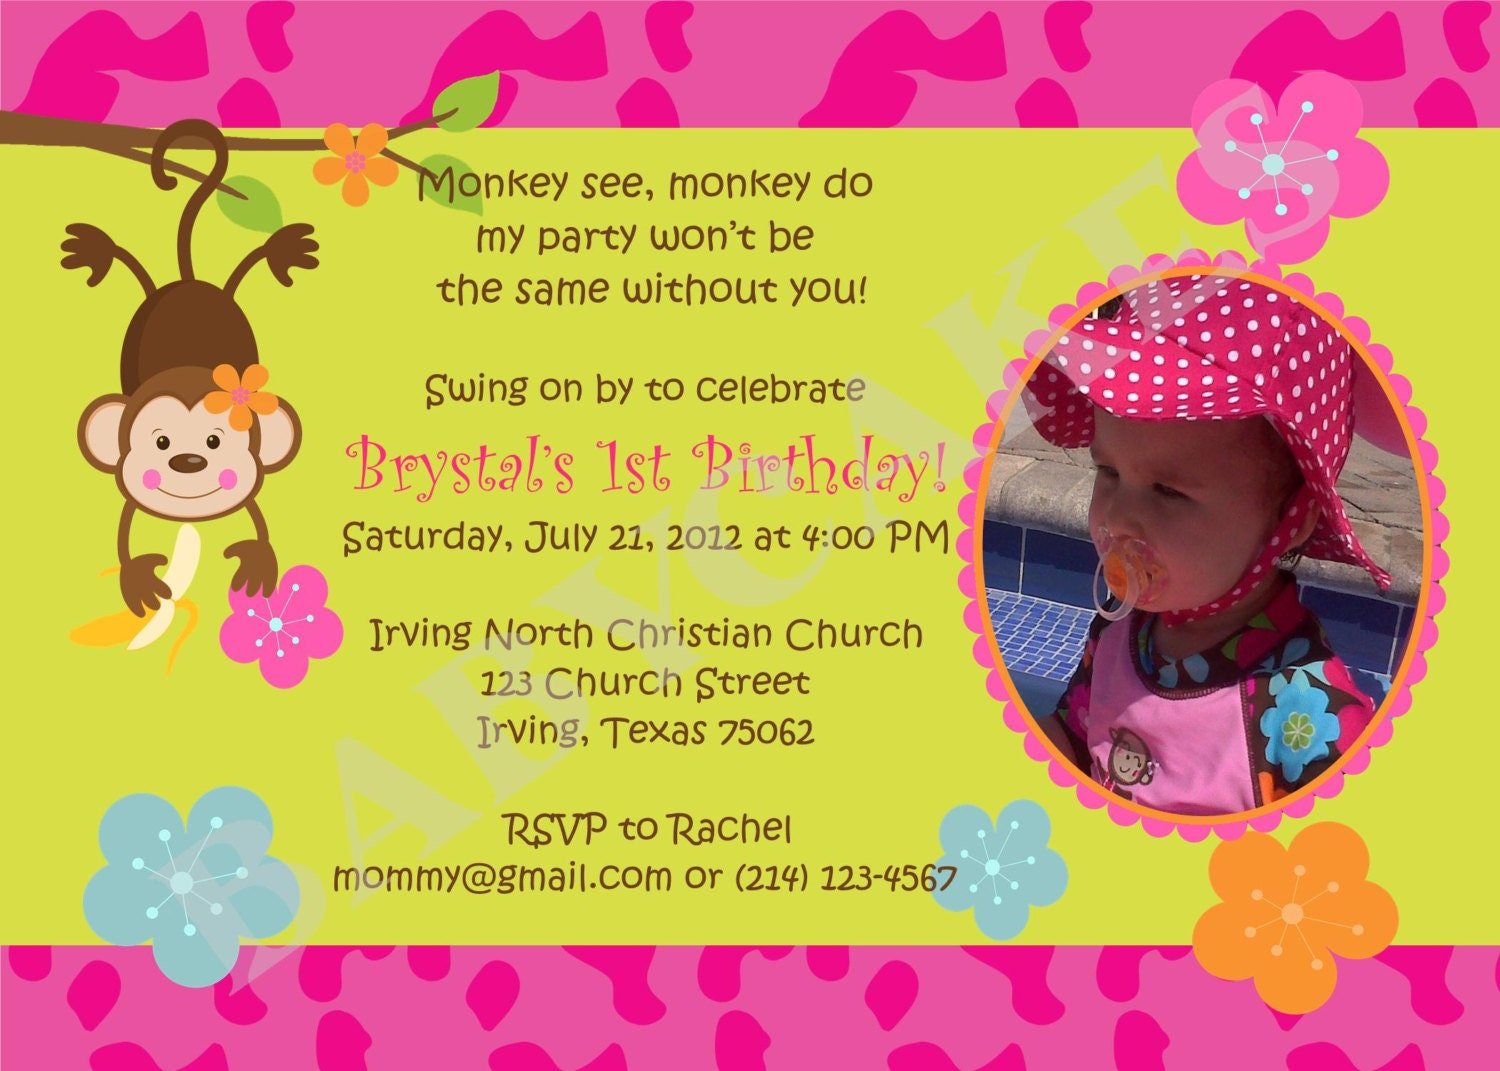 Monkey Pool Party Birthday Invitation Monkey Love Monkey Luau